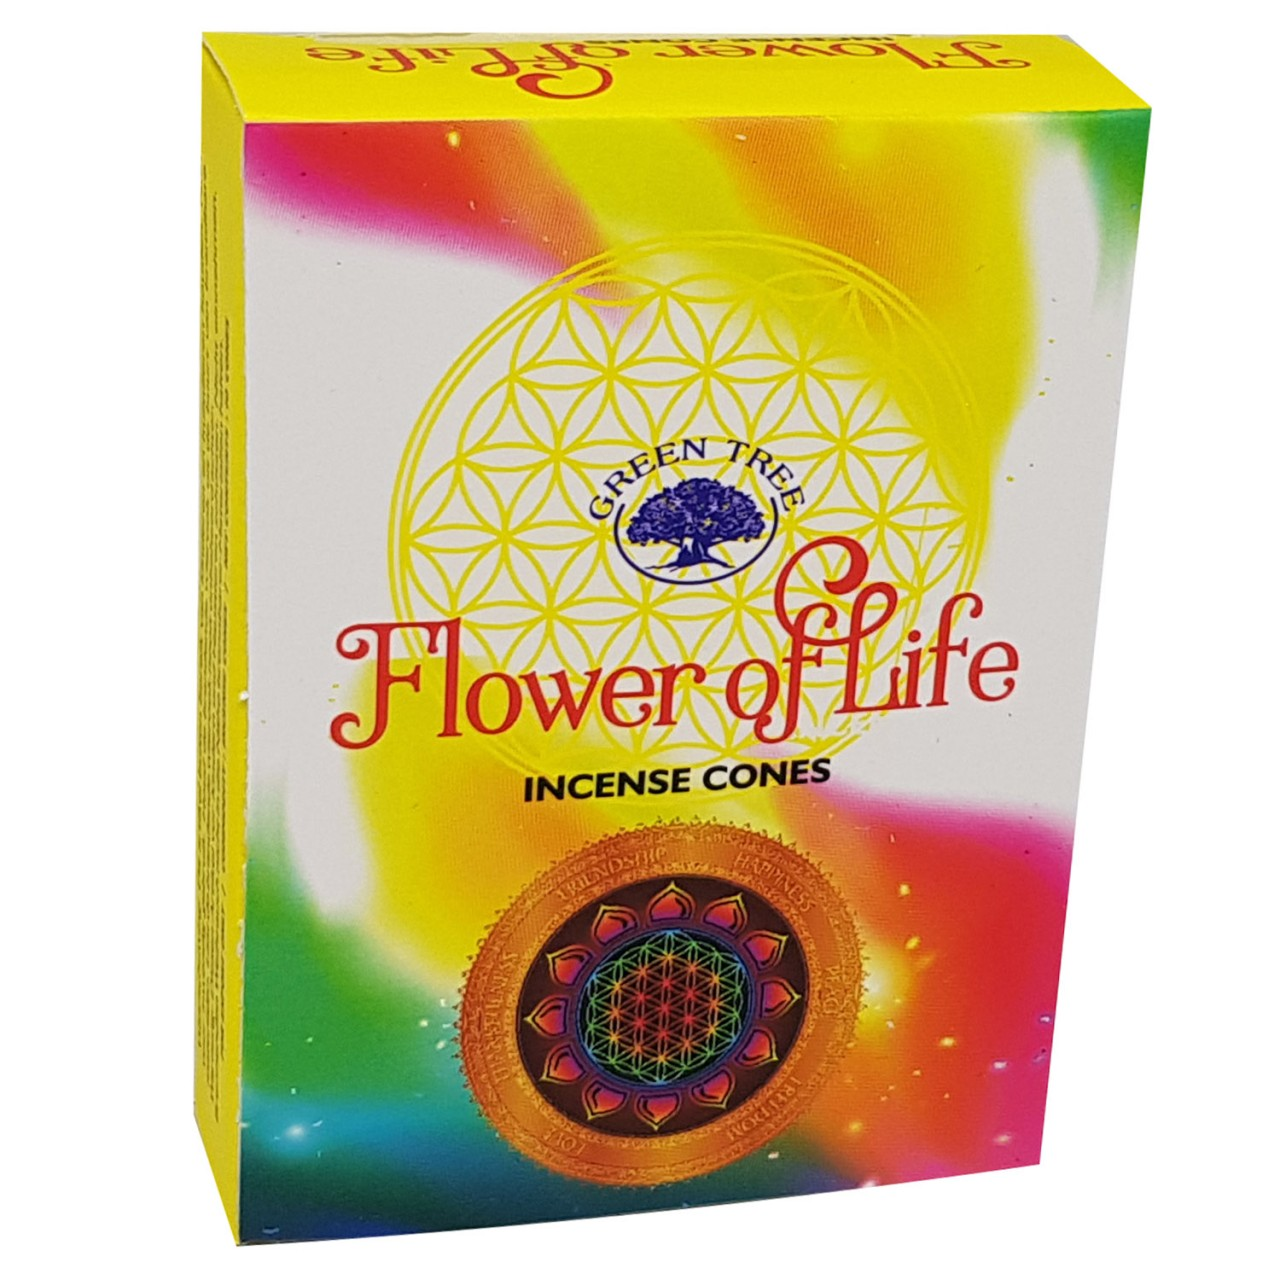 Green Tree Incense Cones - FLOWER OF LIFE